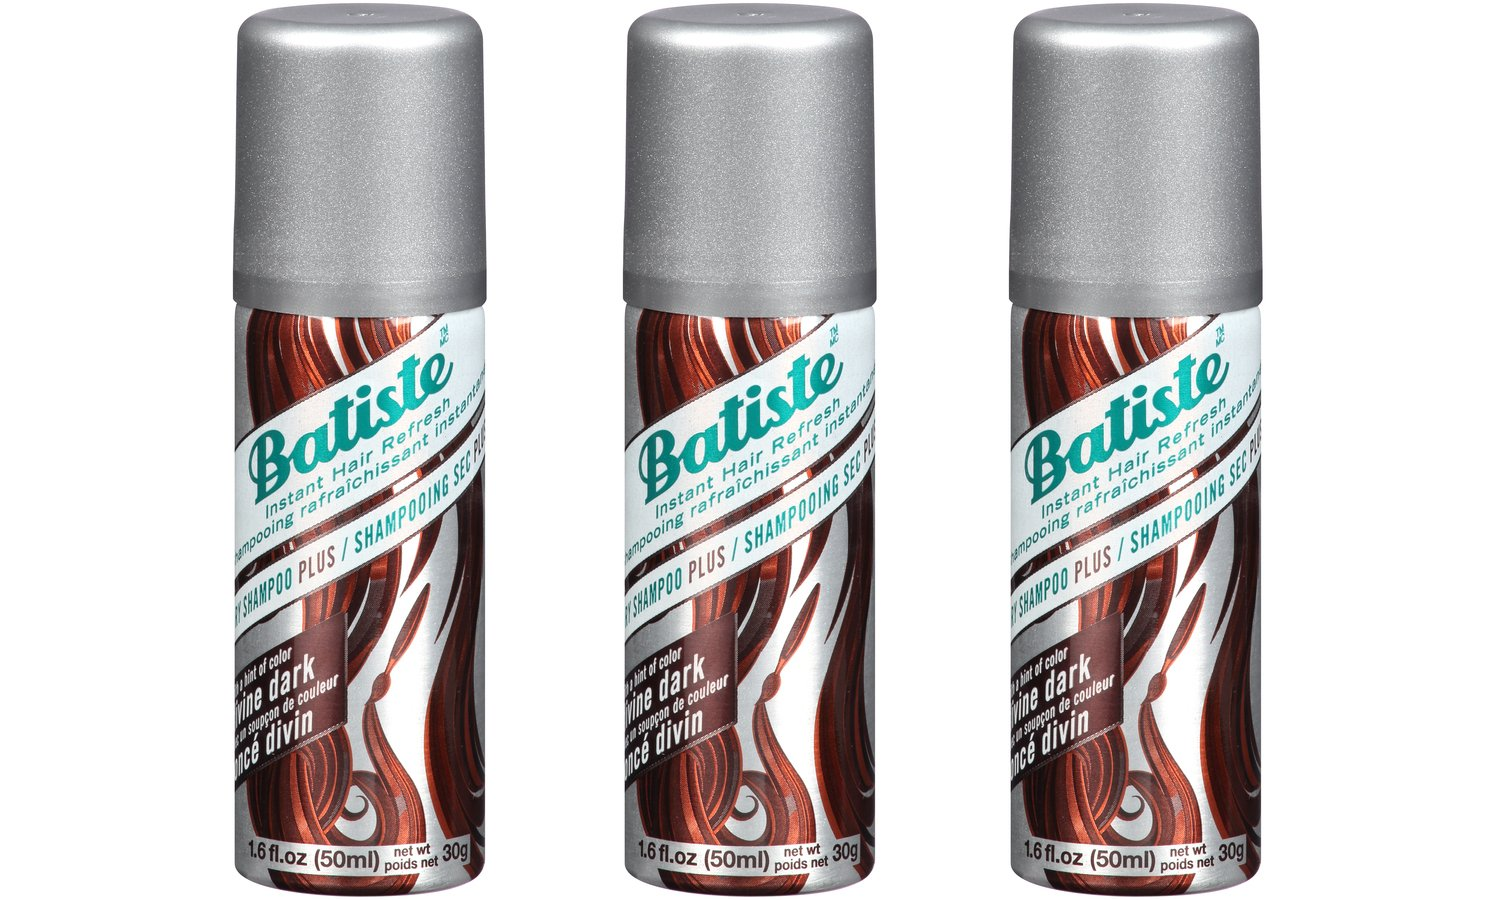 Batiste Dry Shampoo Divine Dark Mini Travel Size 1.6 oz (Pack of 3) by Batiste